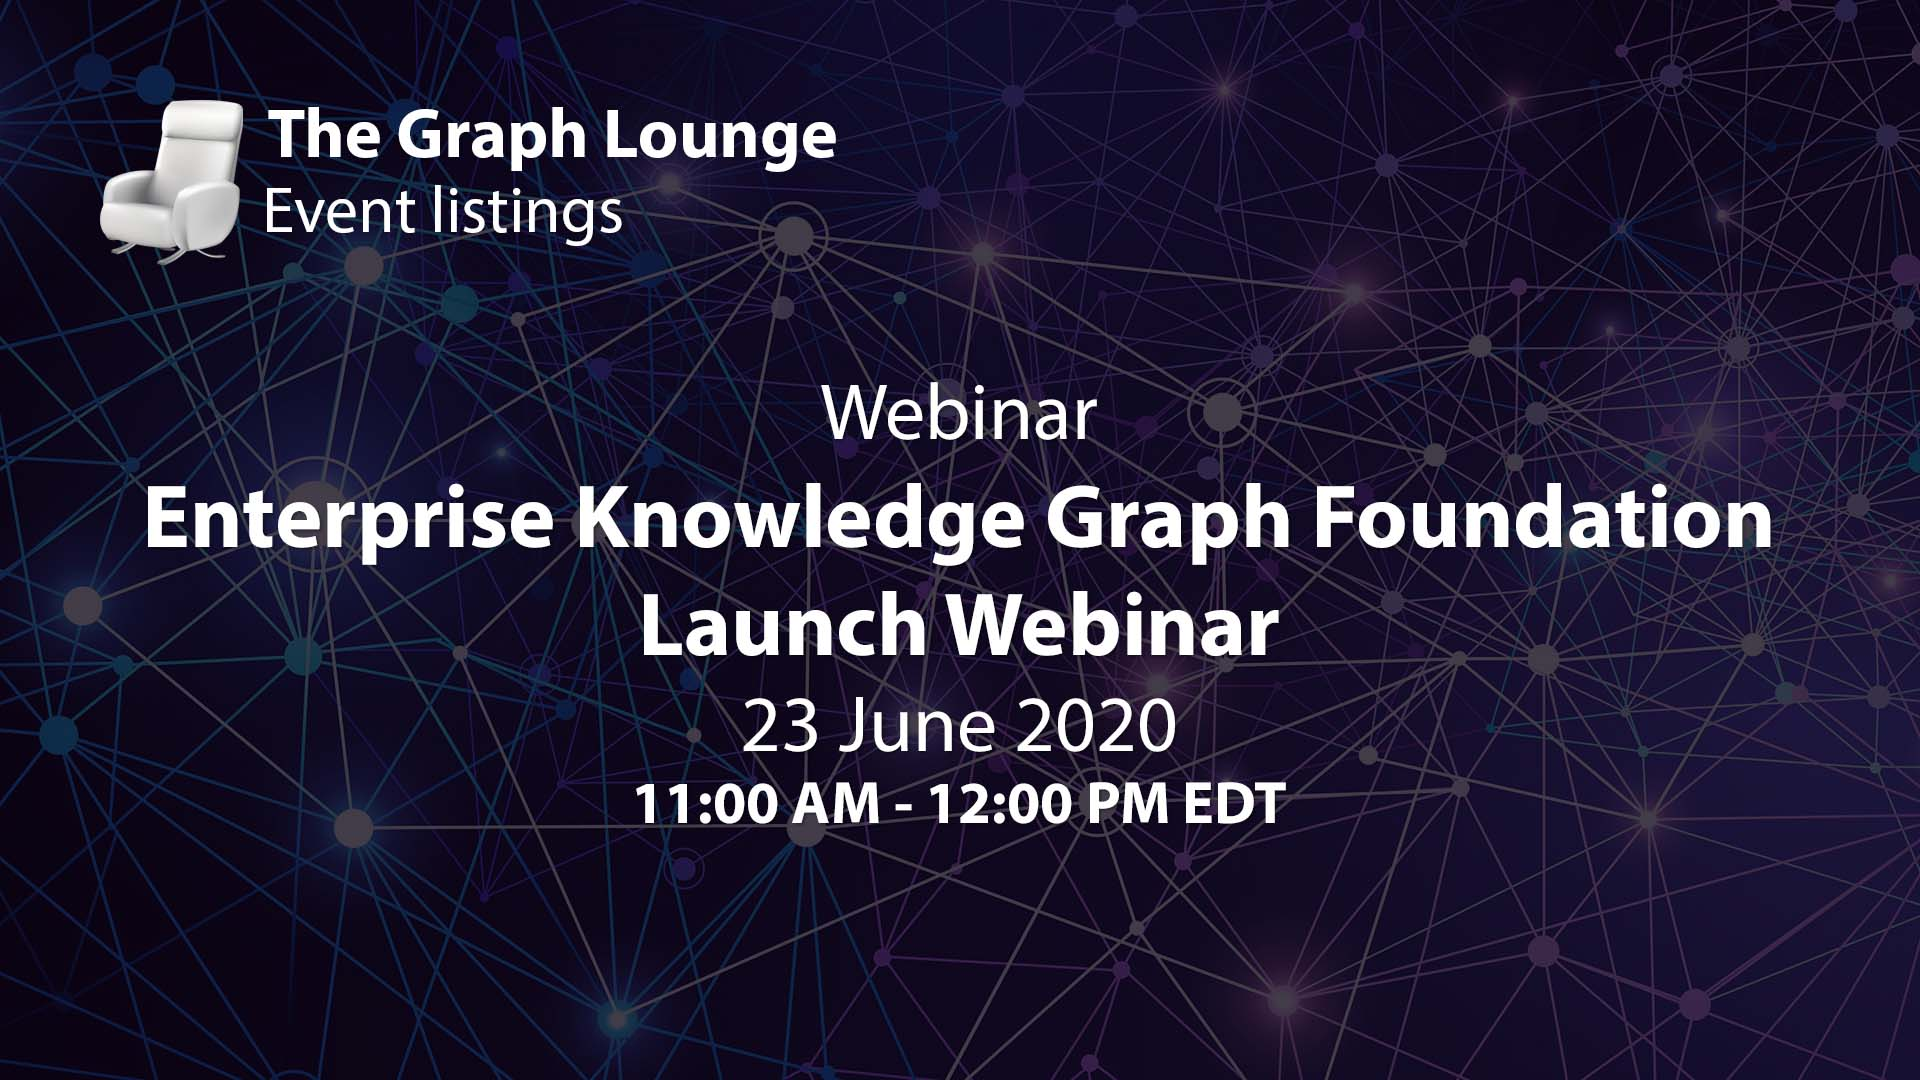 Enterprise Knowledge Graph Foundation (EKGF) Launch Webinar